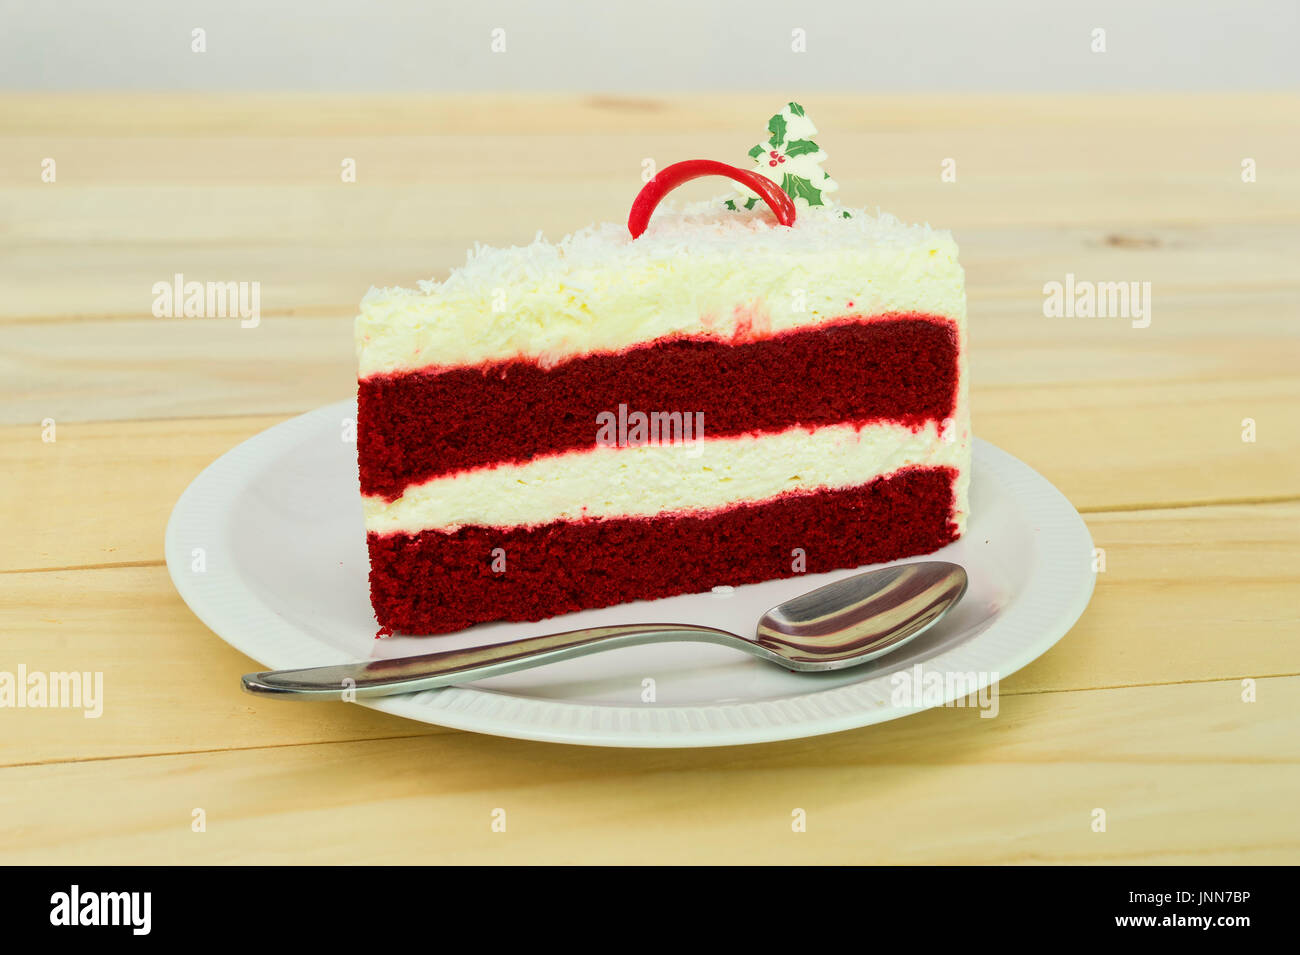 red velvet cake on wood table texture can use to display or montage product m18 texture